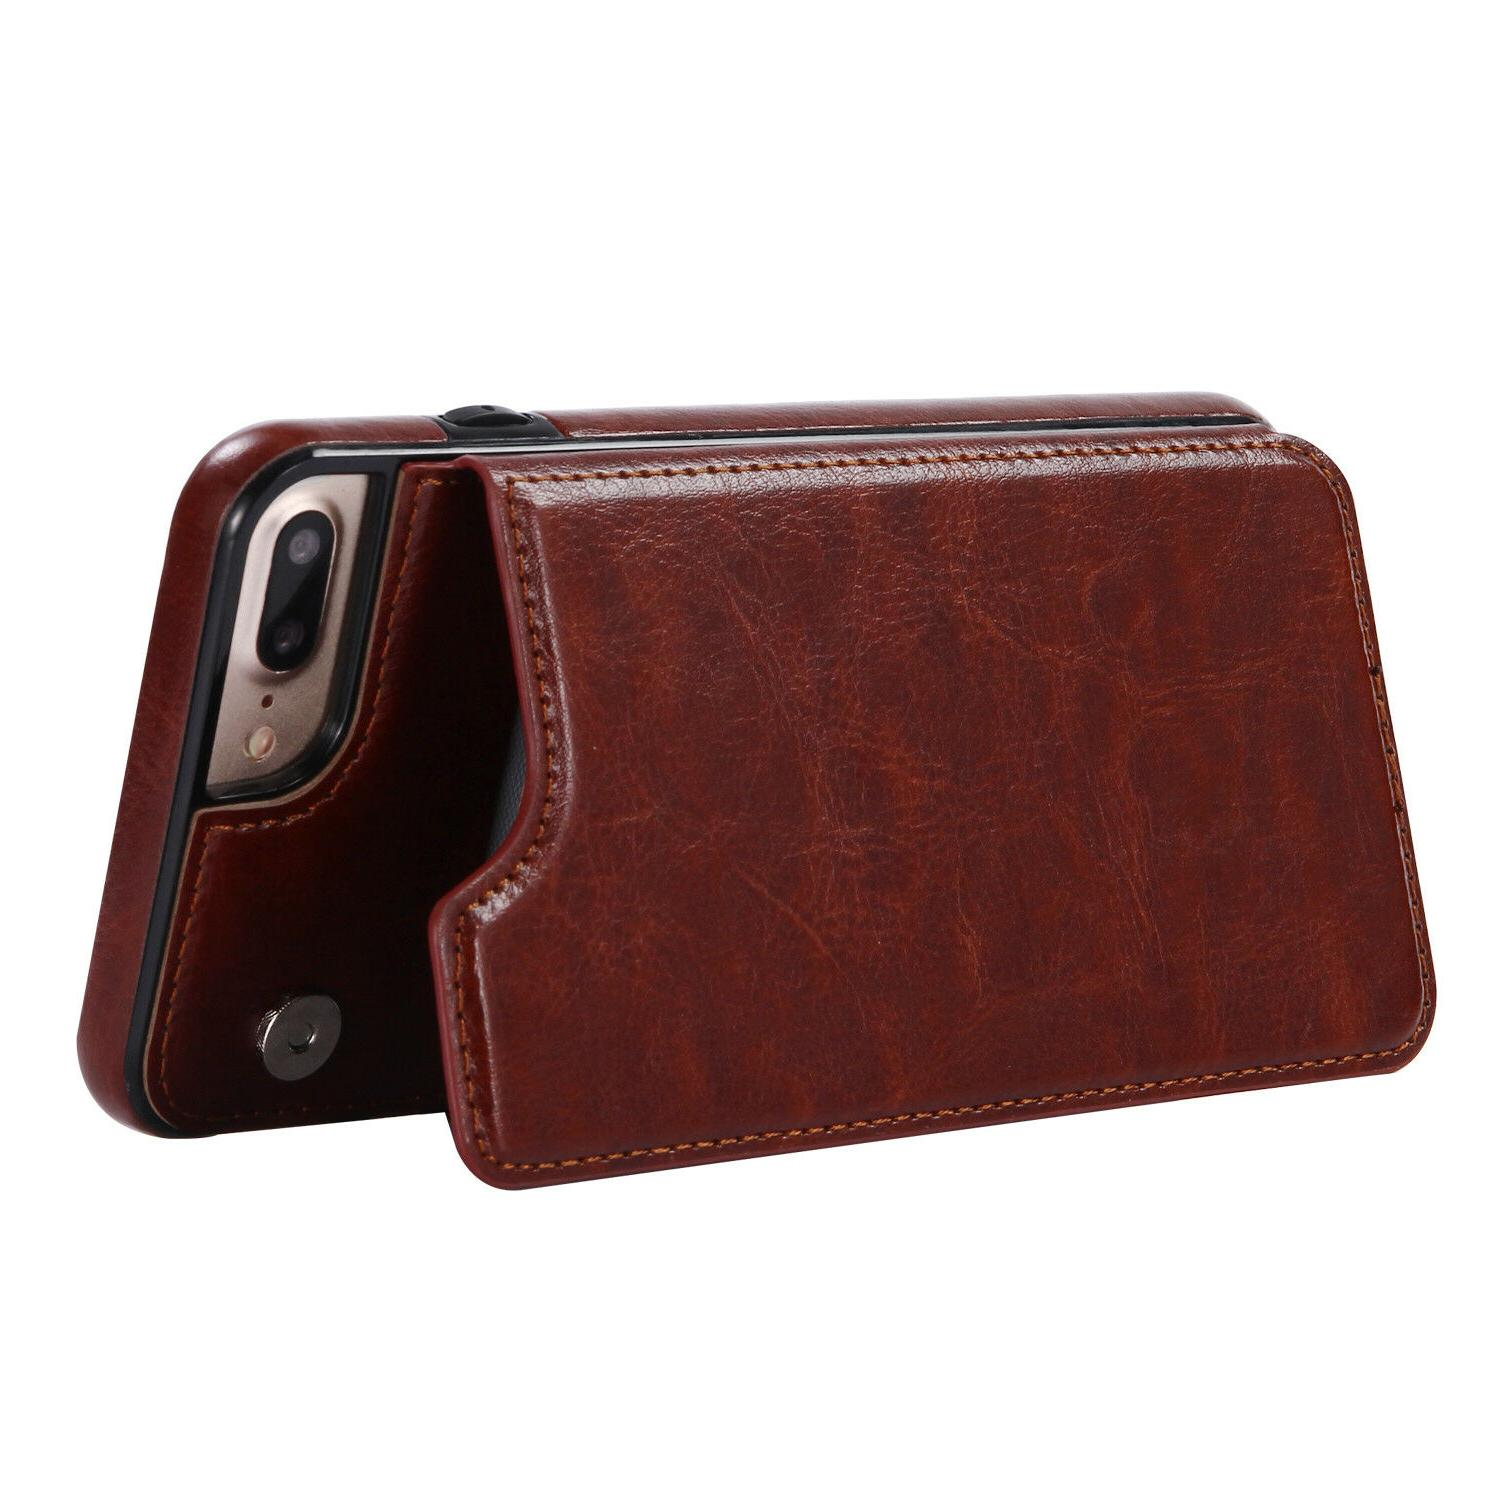 Leather Slot Cover Apple iPhone Max Plus